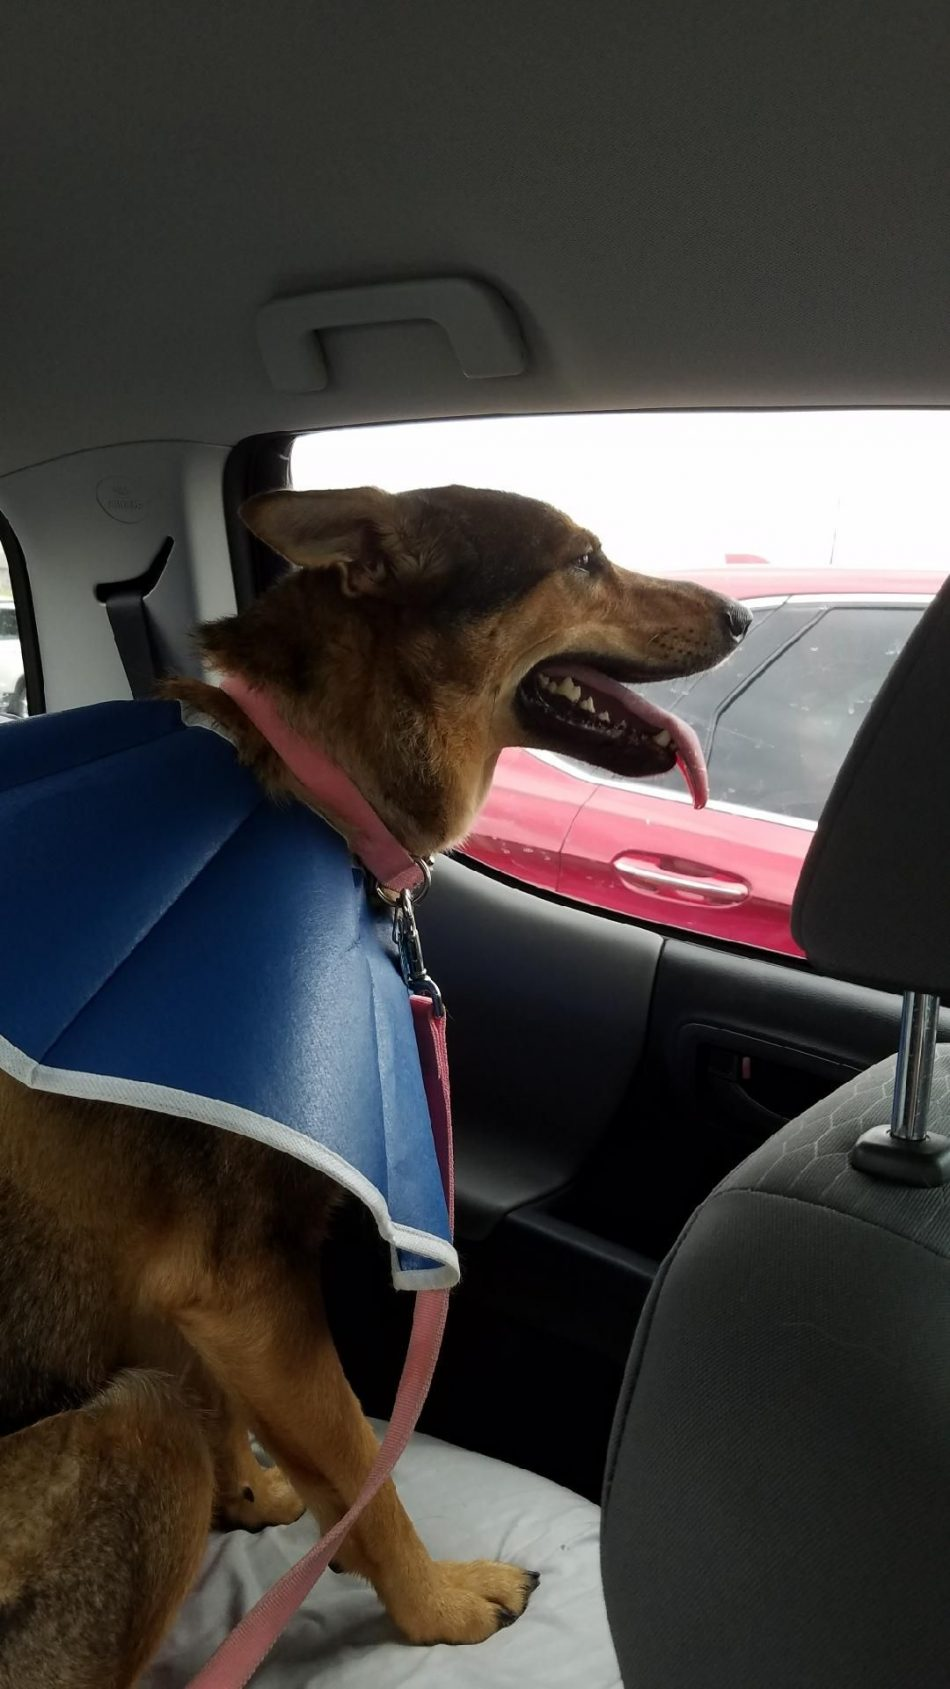 Cone of shame on the dog with no shame after running